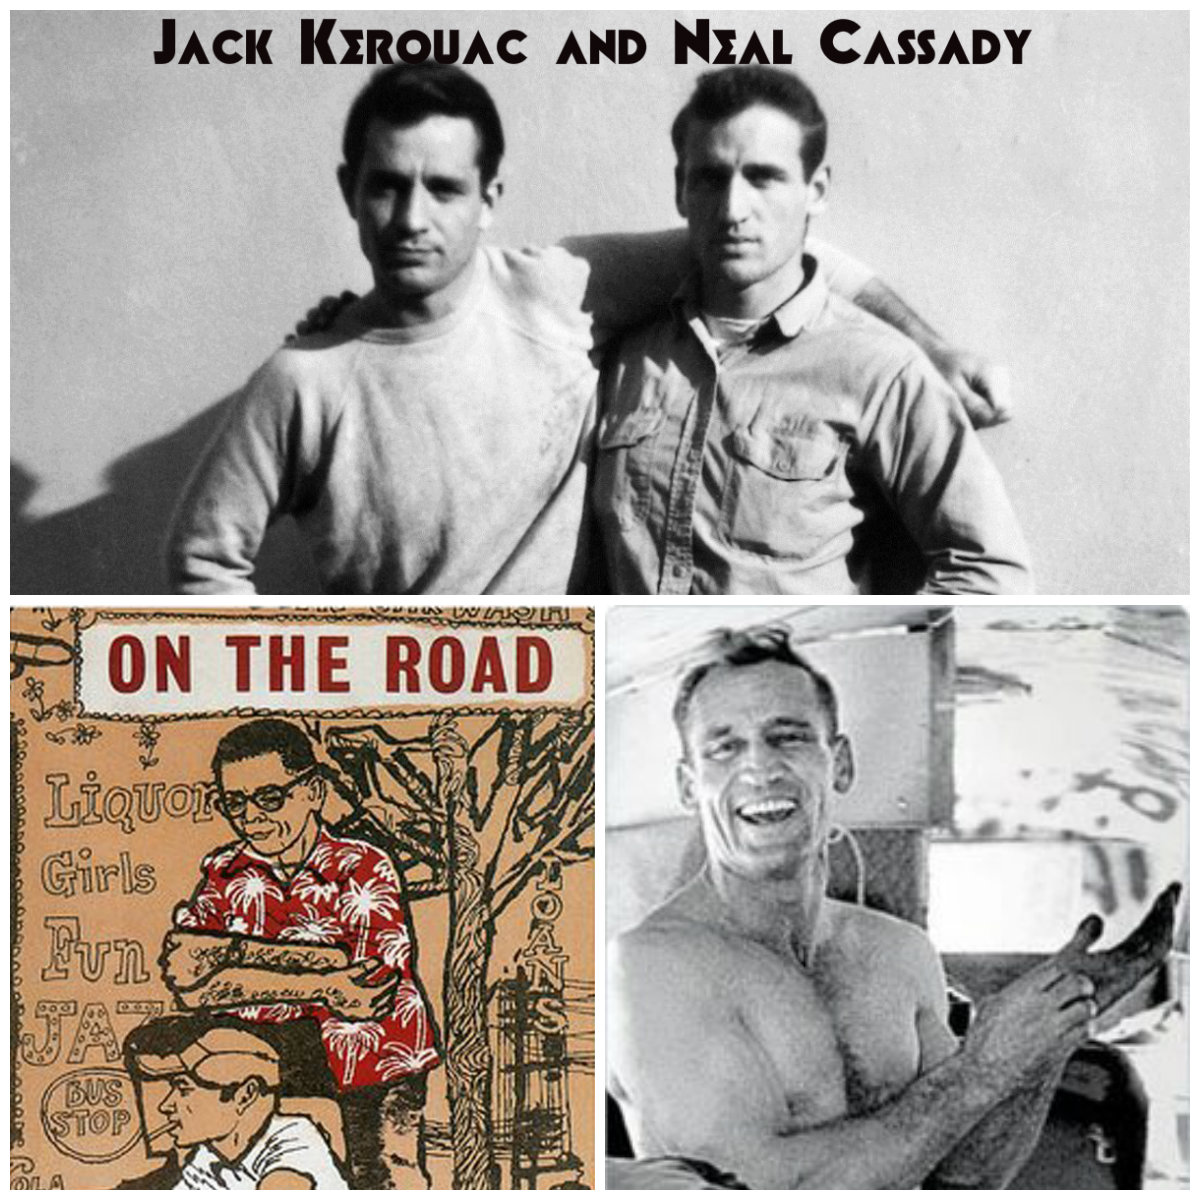 Jack and neal